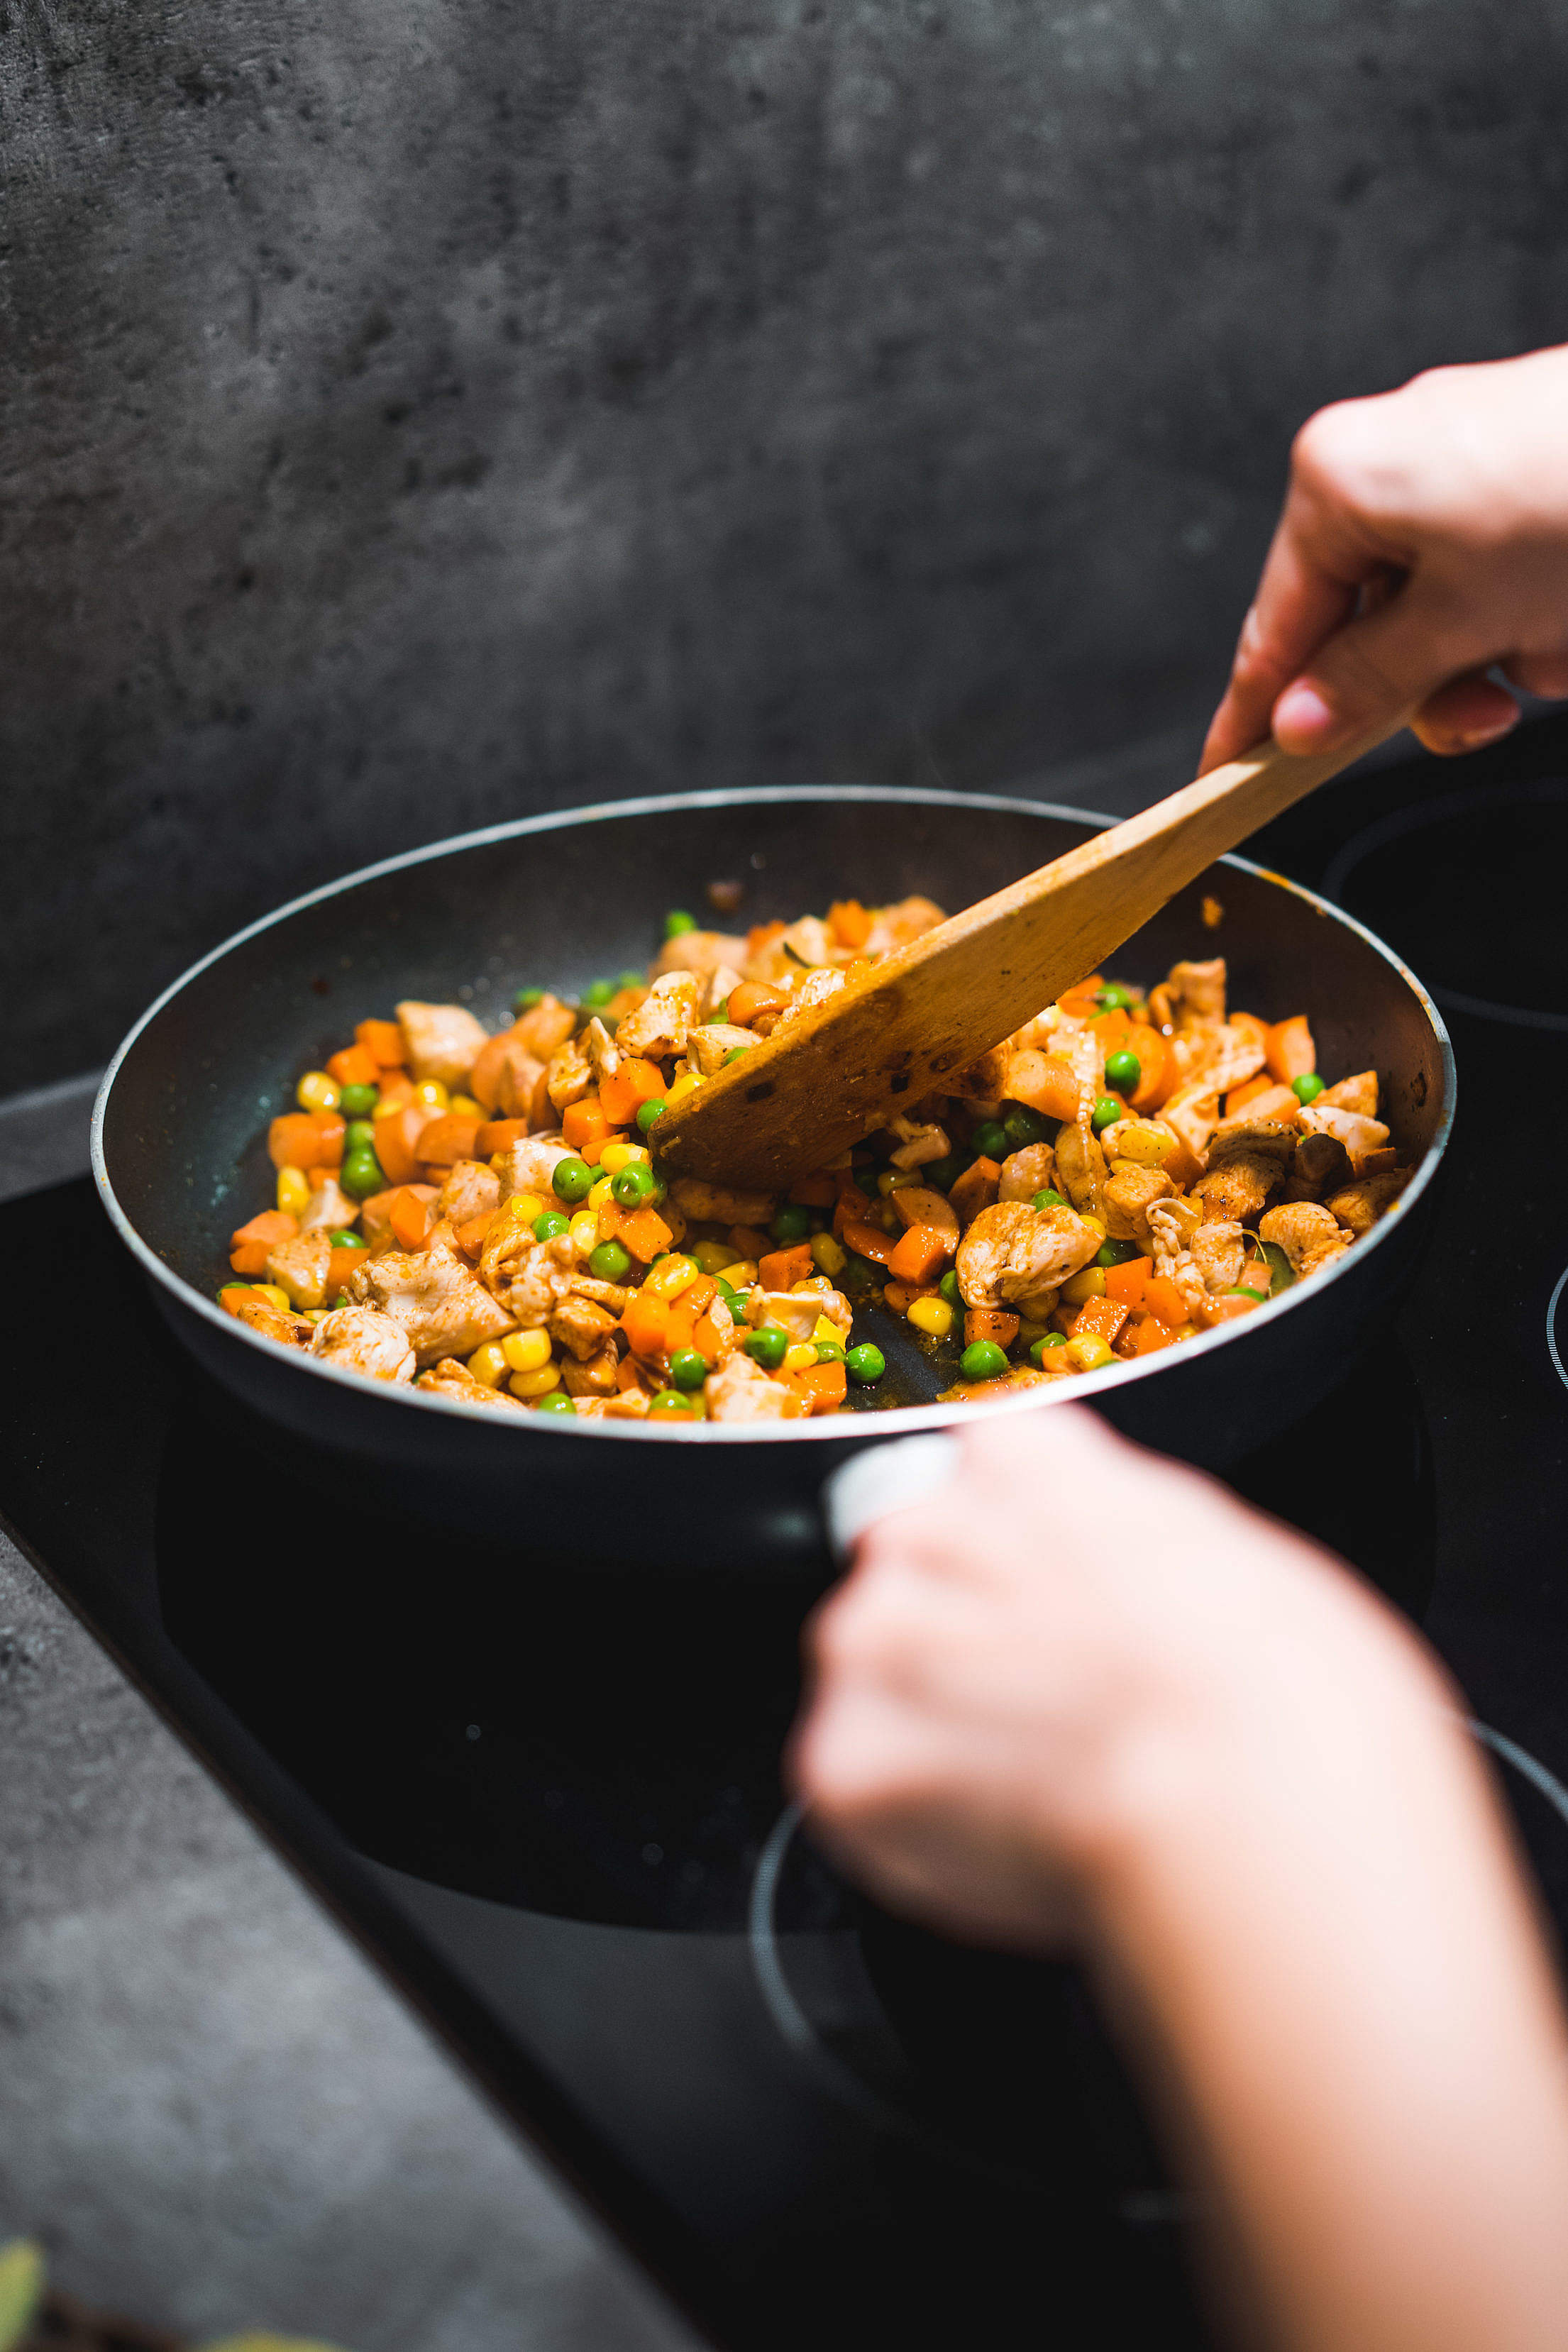 Chicken with Mixed Vegetables in a Pan Free Stock Photo